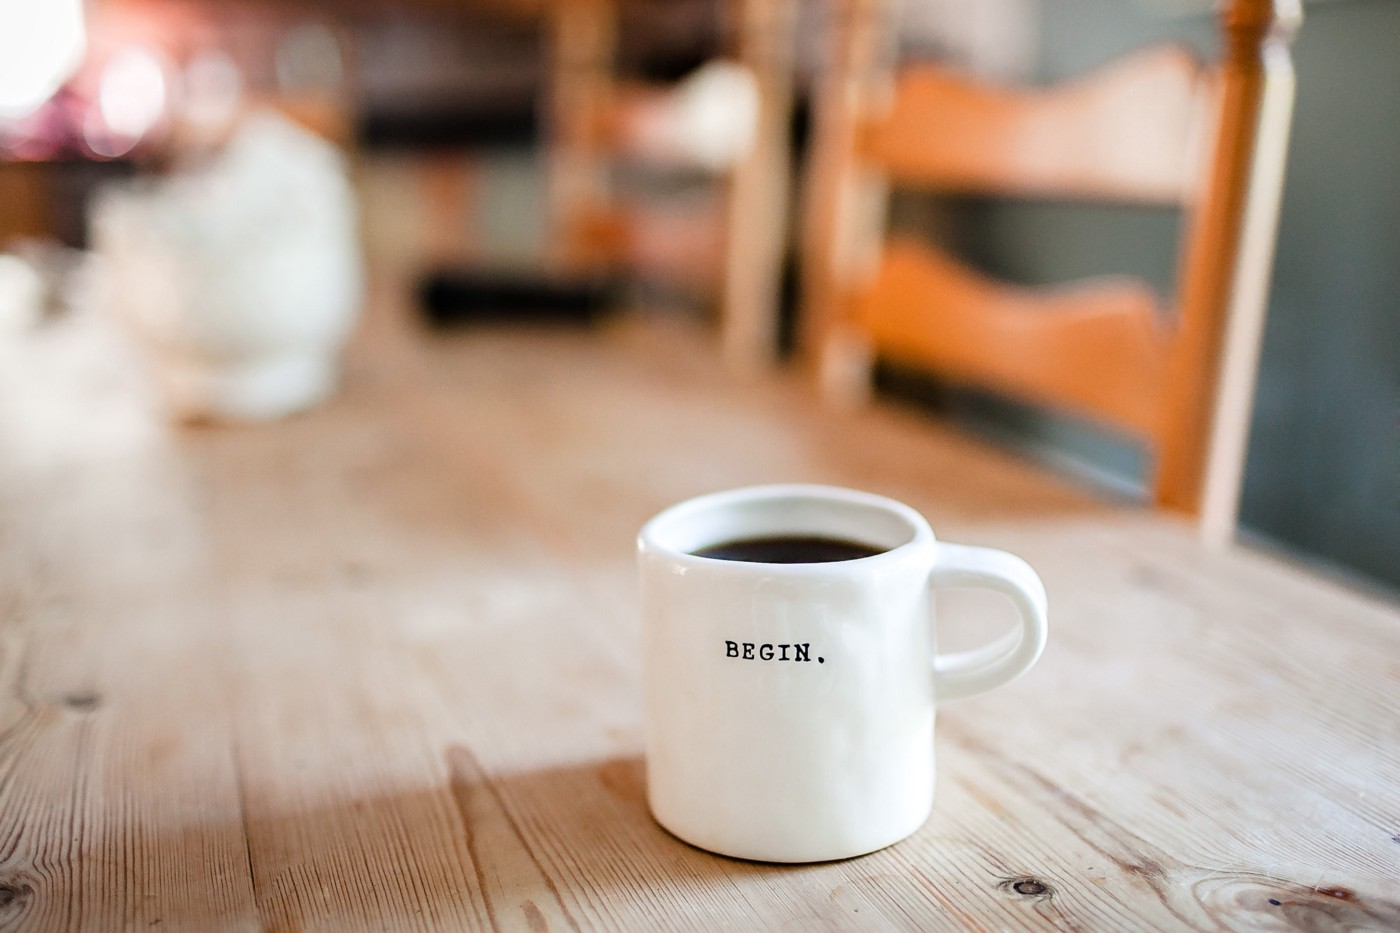 """Image of a coffee mug with the word """"begin"""" printed on it sitting on a wooden table."""